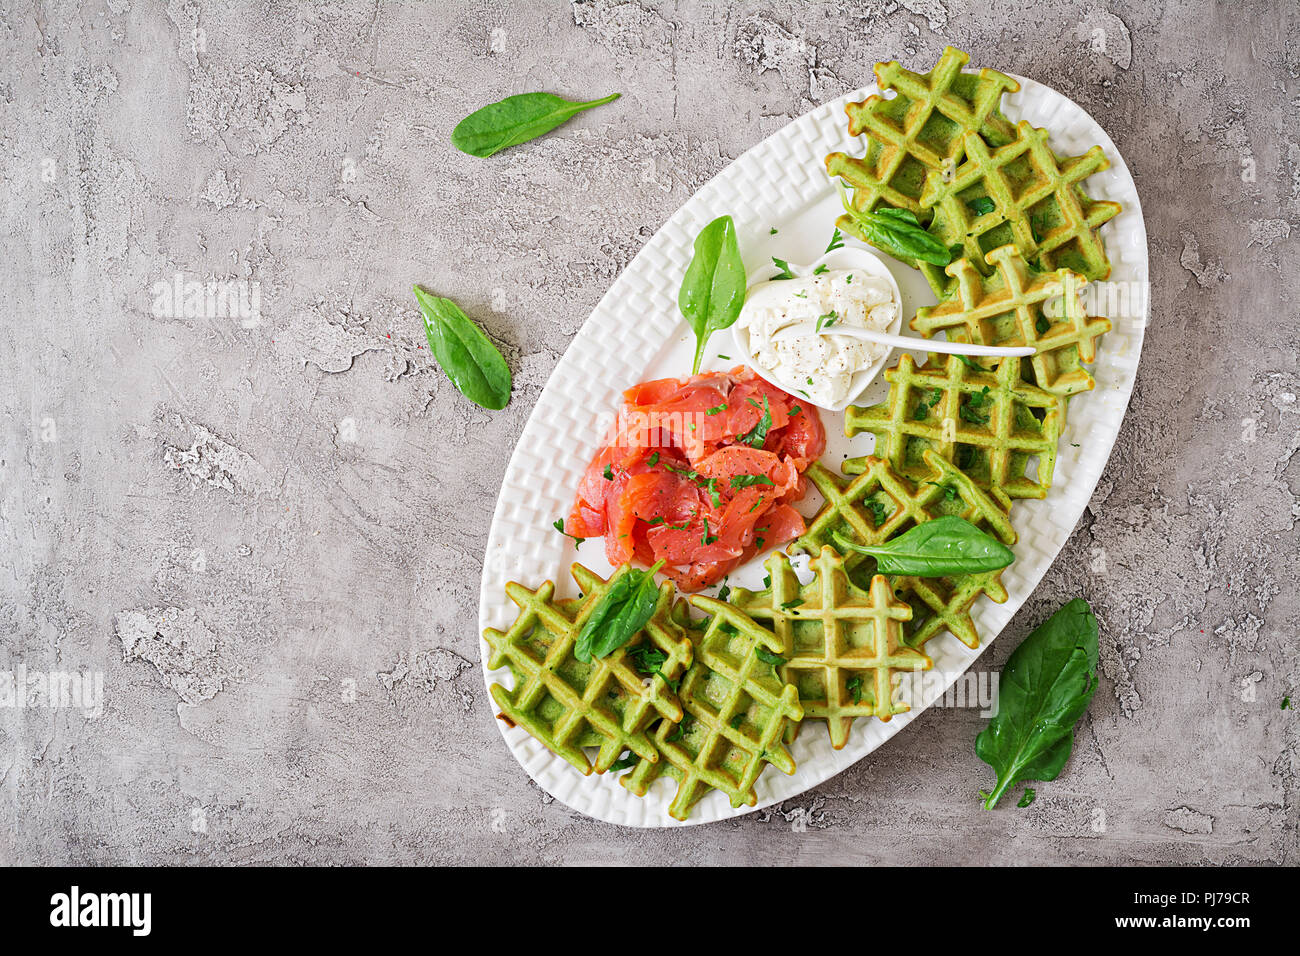 Savory waffles with spinach and cream cheese, salmon in white plate. Tasty food. Top view. Flat lay - Stock Image